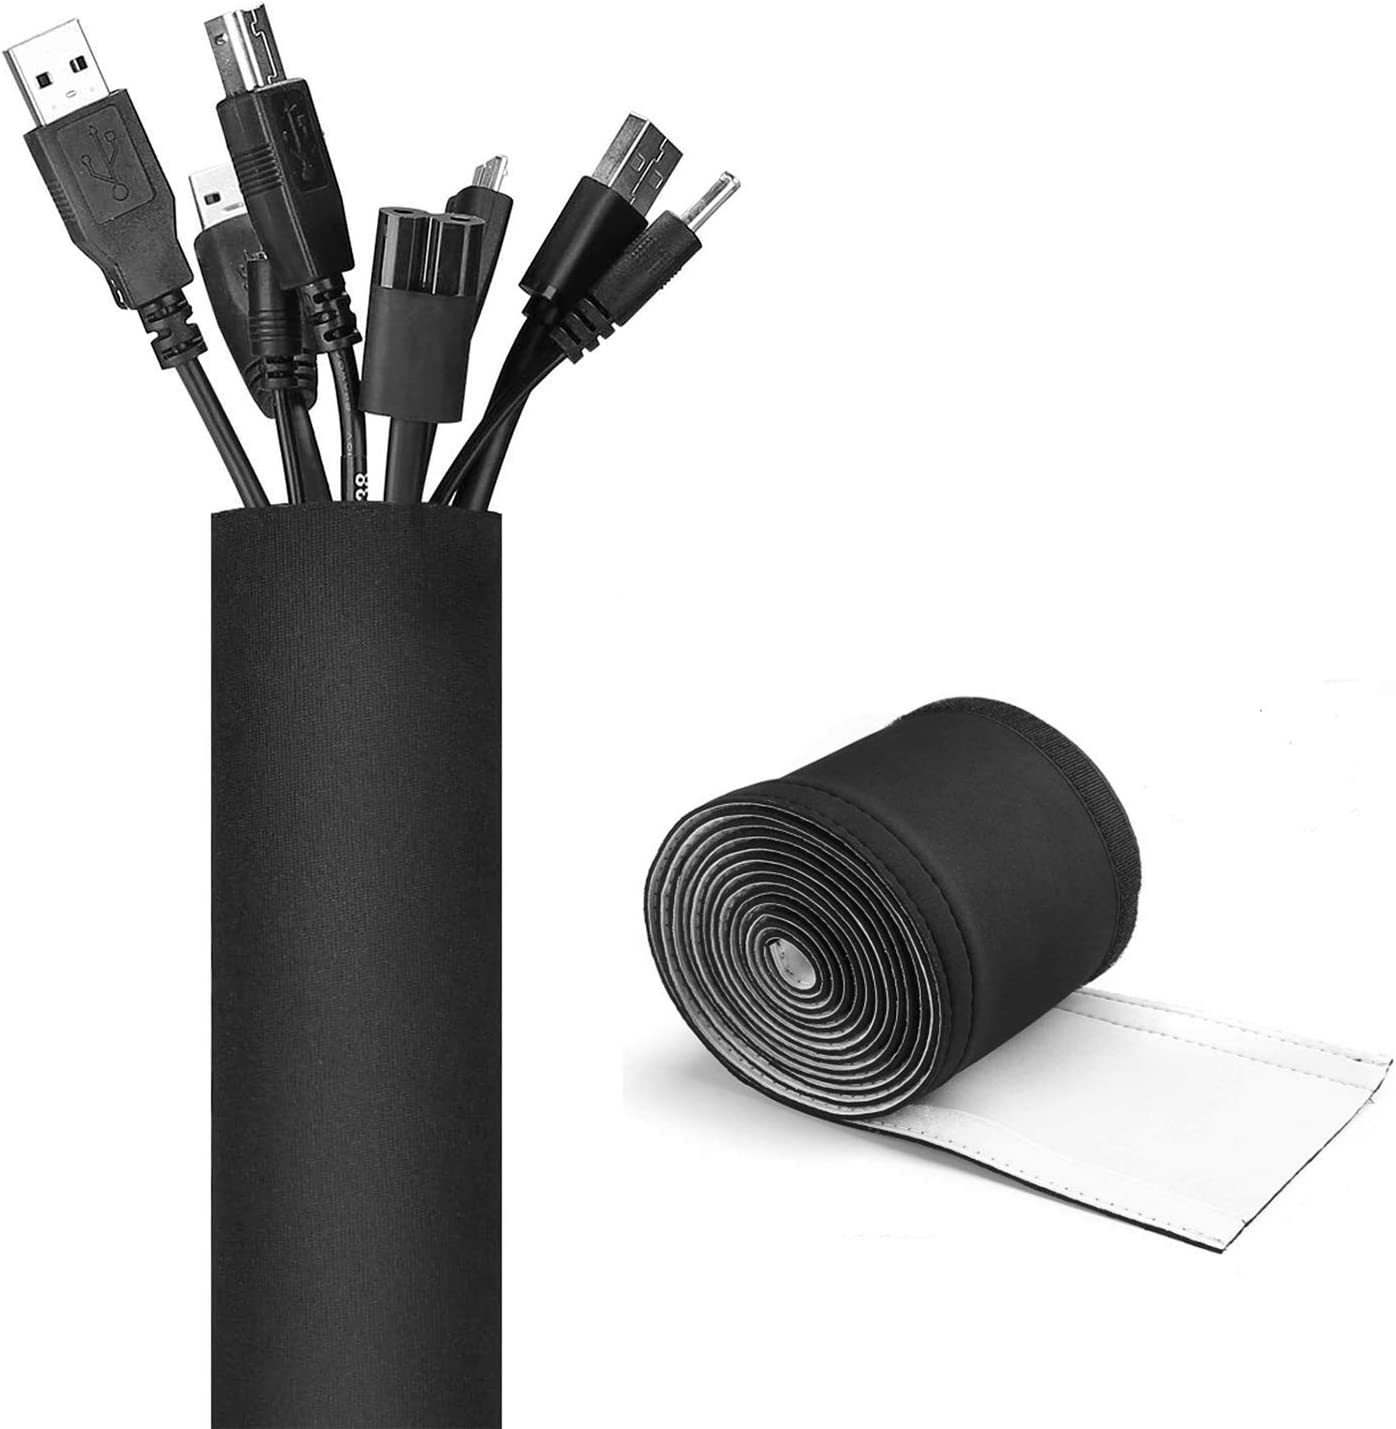 JOTO 10.83ft Cable Management Sleeve, Cuttable Neoprene Cord Management Organizer System, Flexible Cable Wrap Cover Wire Hider for Desk TV Computer Office Home Theater -Reversible Black/White, Large: Home Improvement